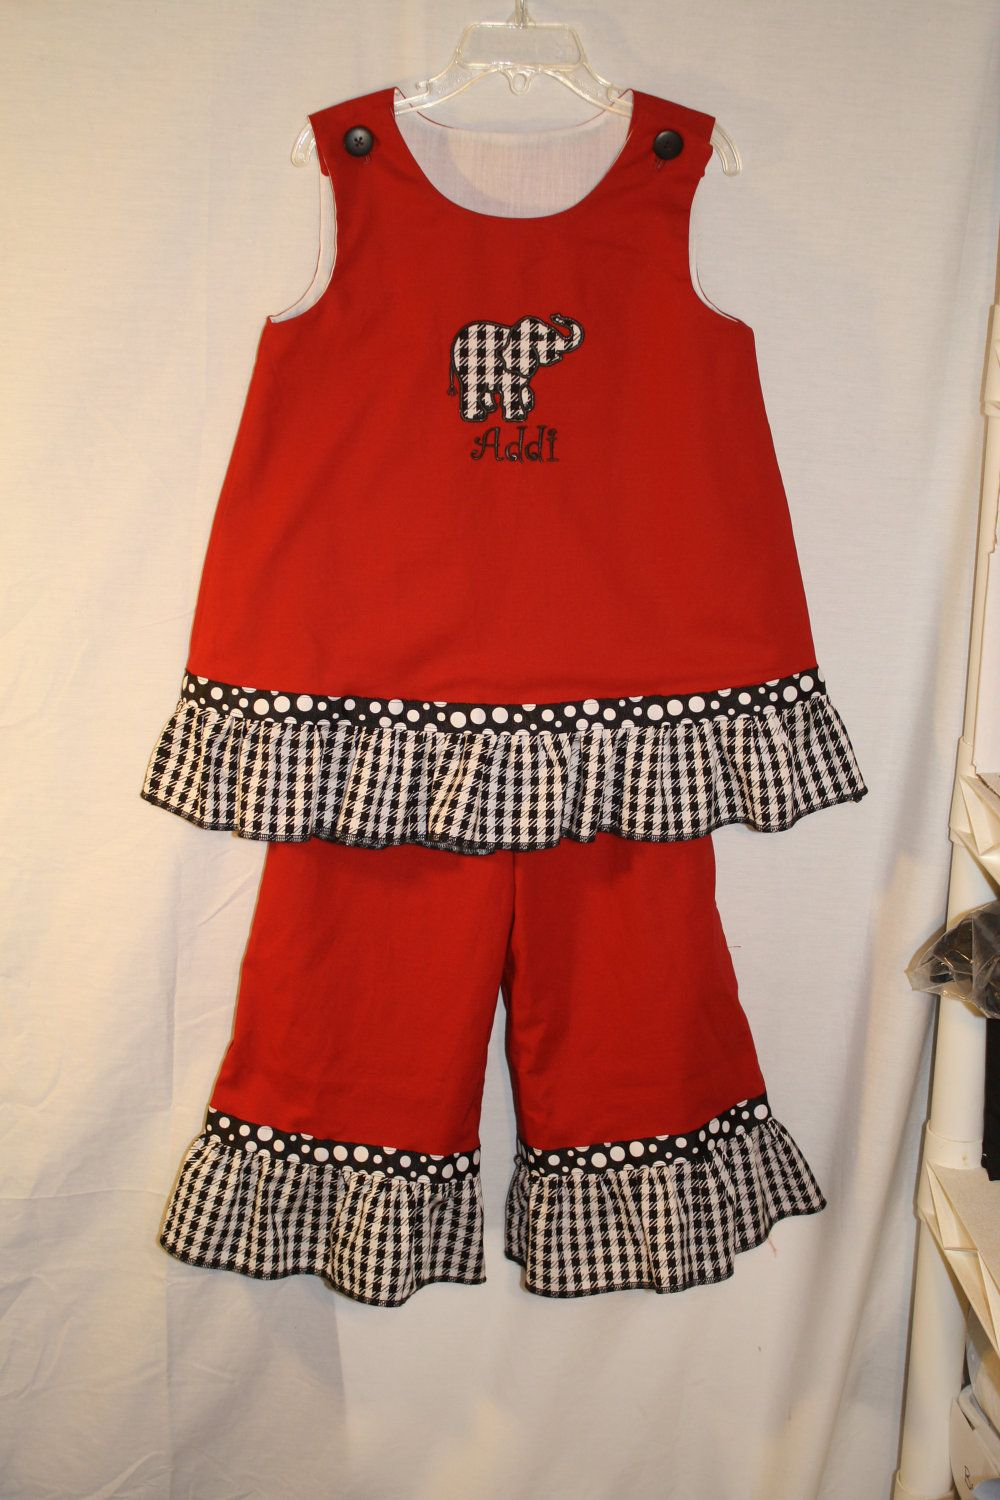 Custom Embroidered Appliqued Alabama Hounds tooth Elephant  A Line Top with Ruffle Pants Set. $54.00, via Etsy.